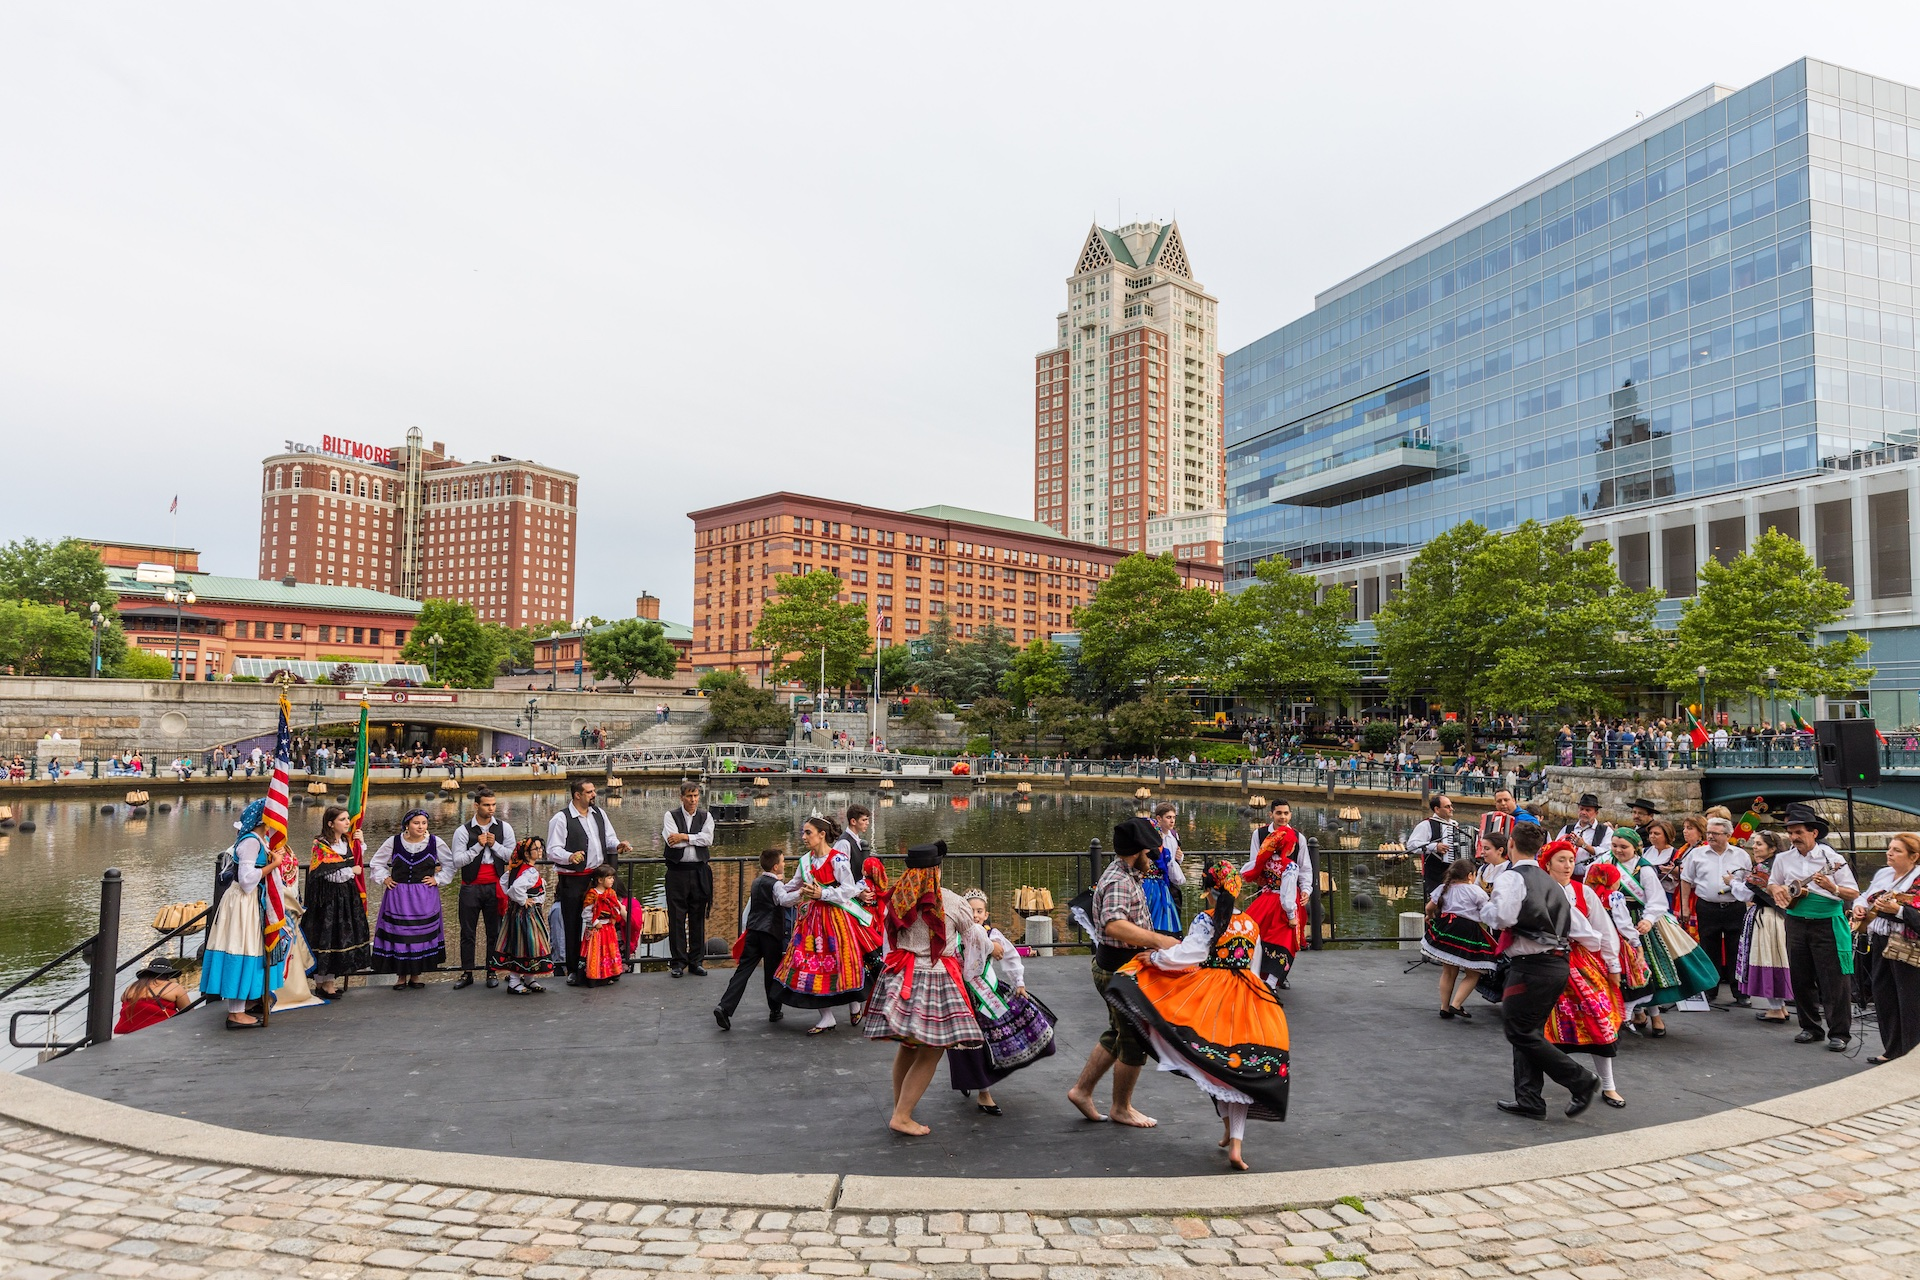 folkloric-dance-performance-on-waterplace-park-basin-stage_40984416660_o